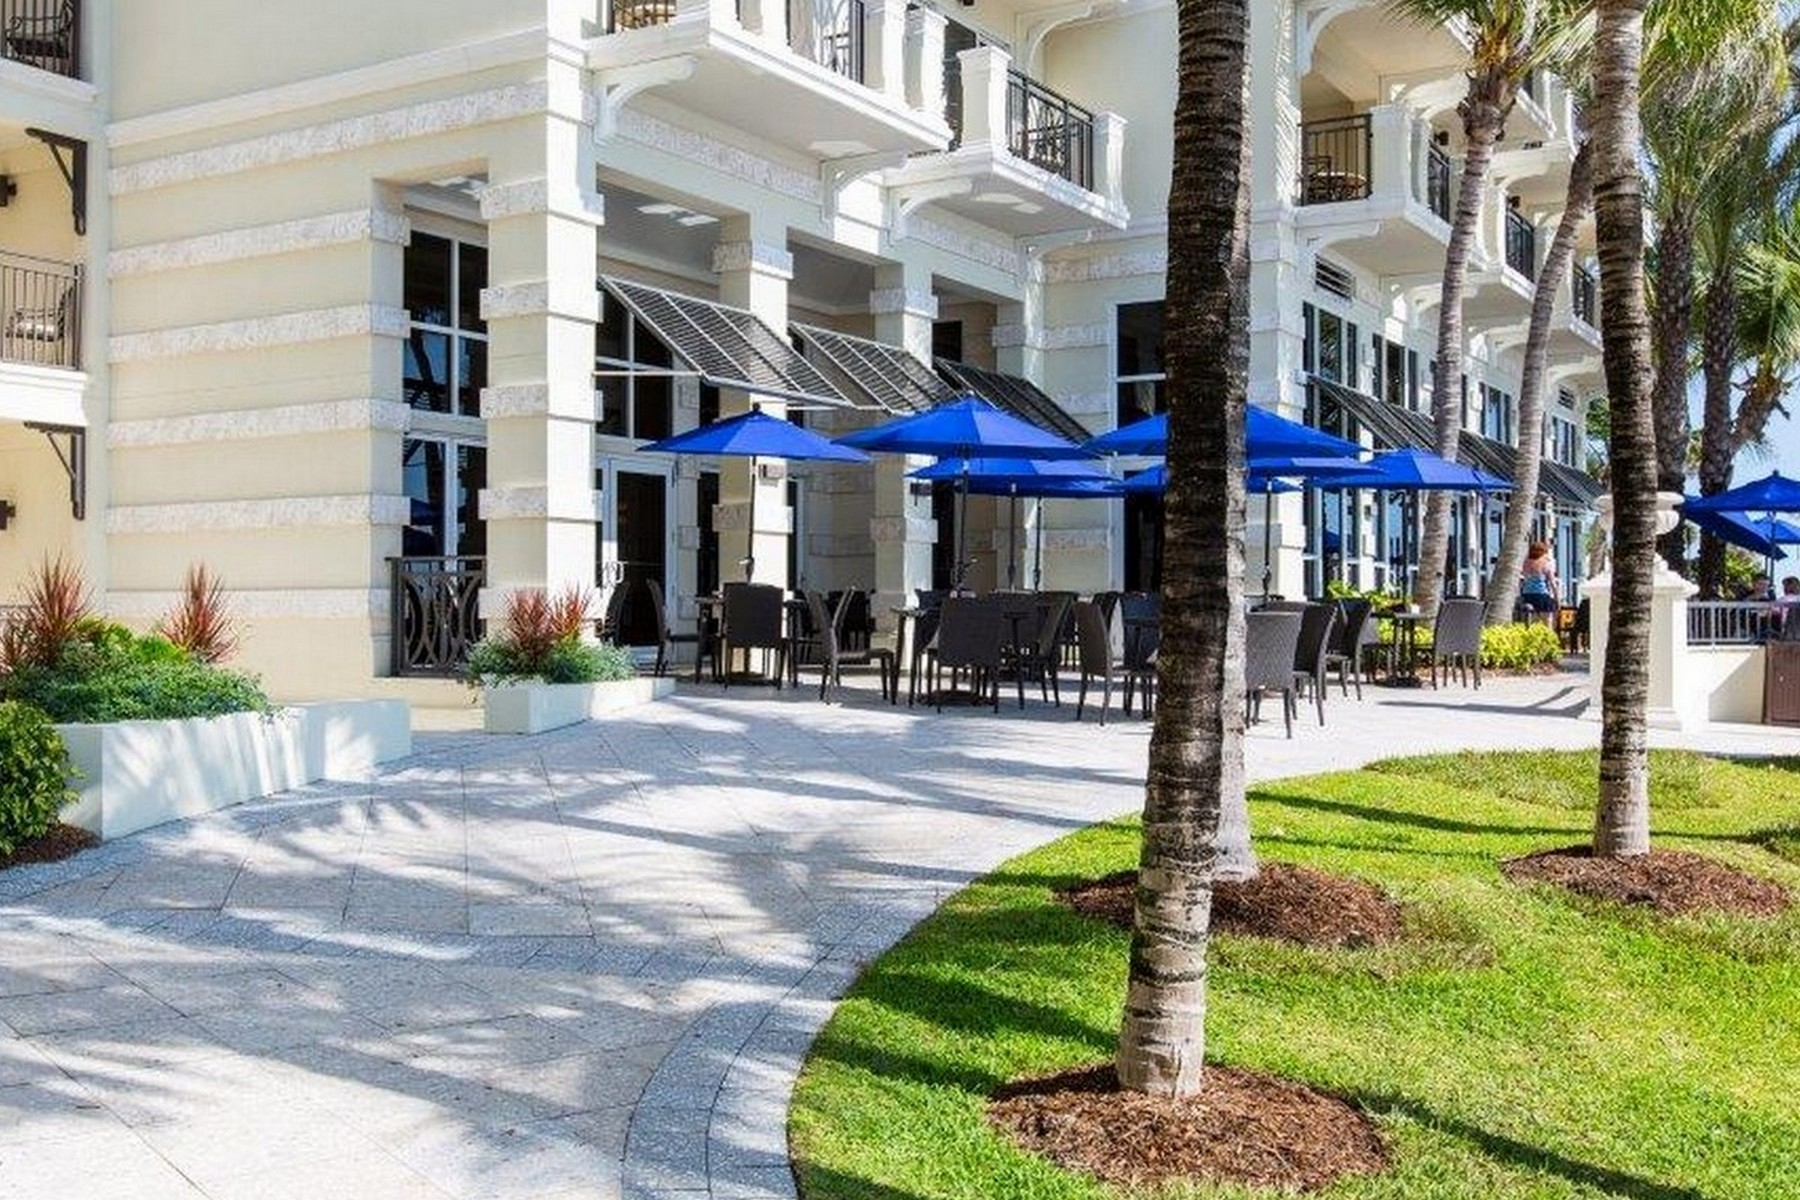 Additional photo for property listing at Lovely Condo in Vero Beach Hotel and Spa 3500 Ocean Drive #103 Vero Beach, Florida 32963 United States